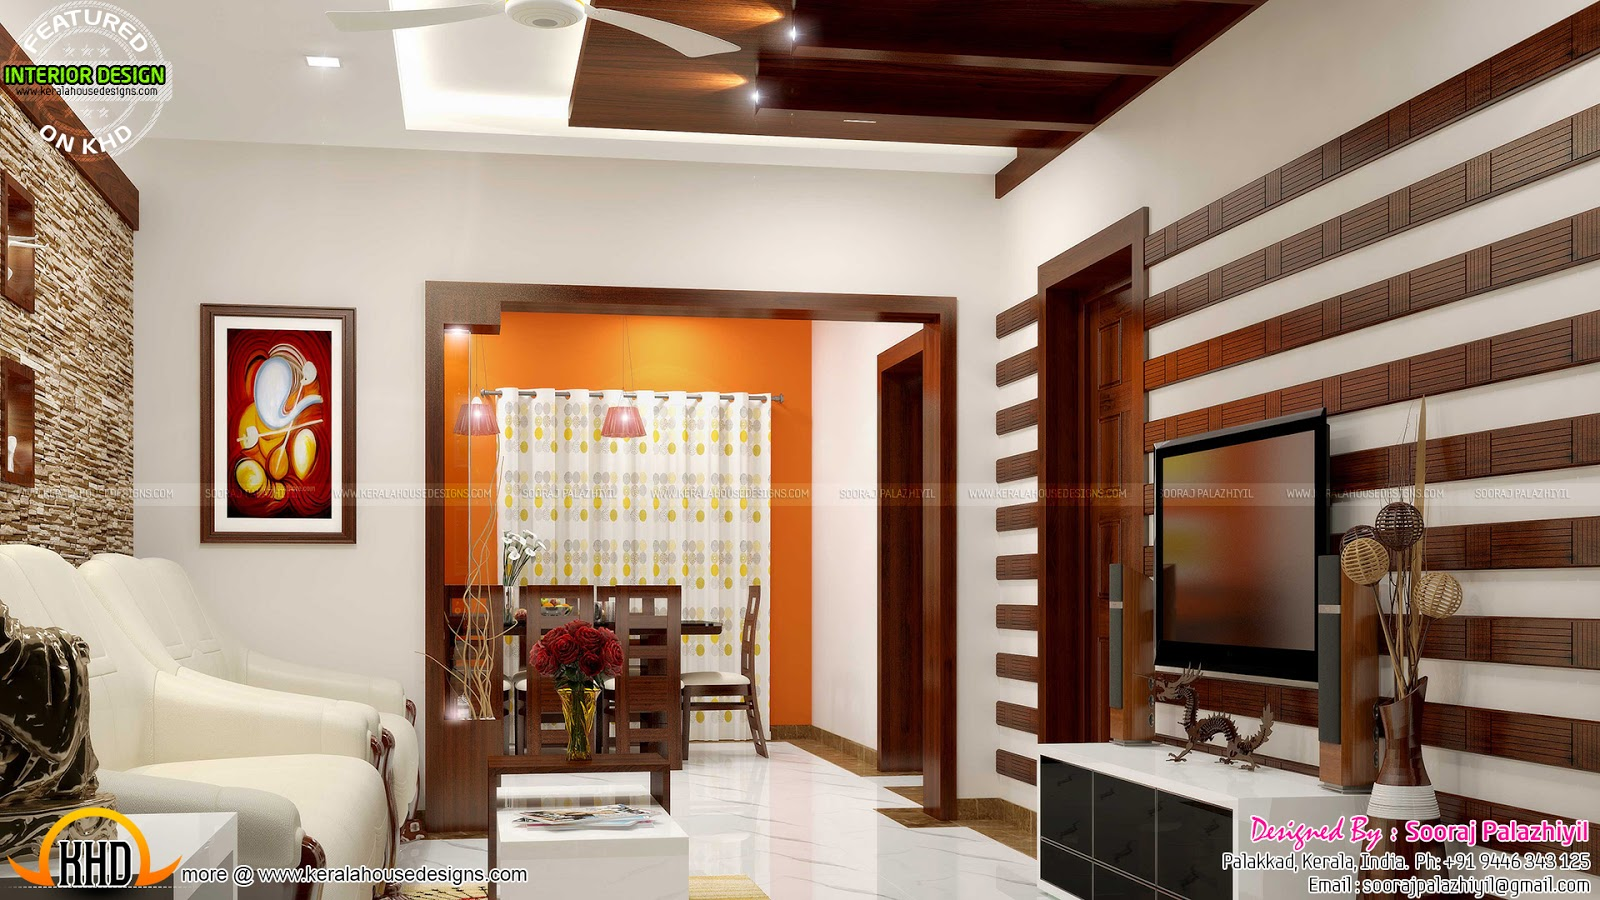 Interior design for apartments in kerala simple for House simple interior design